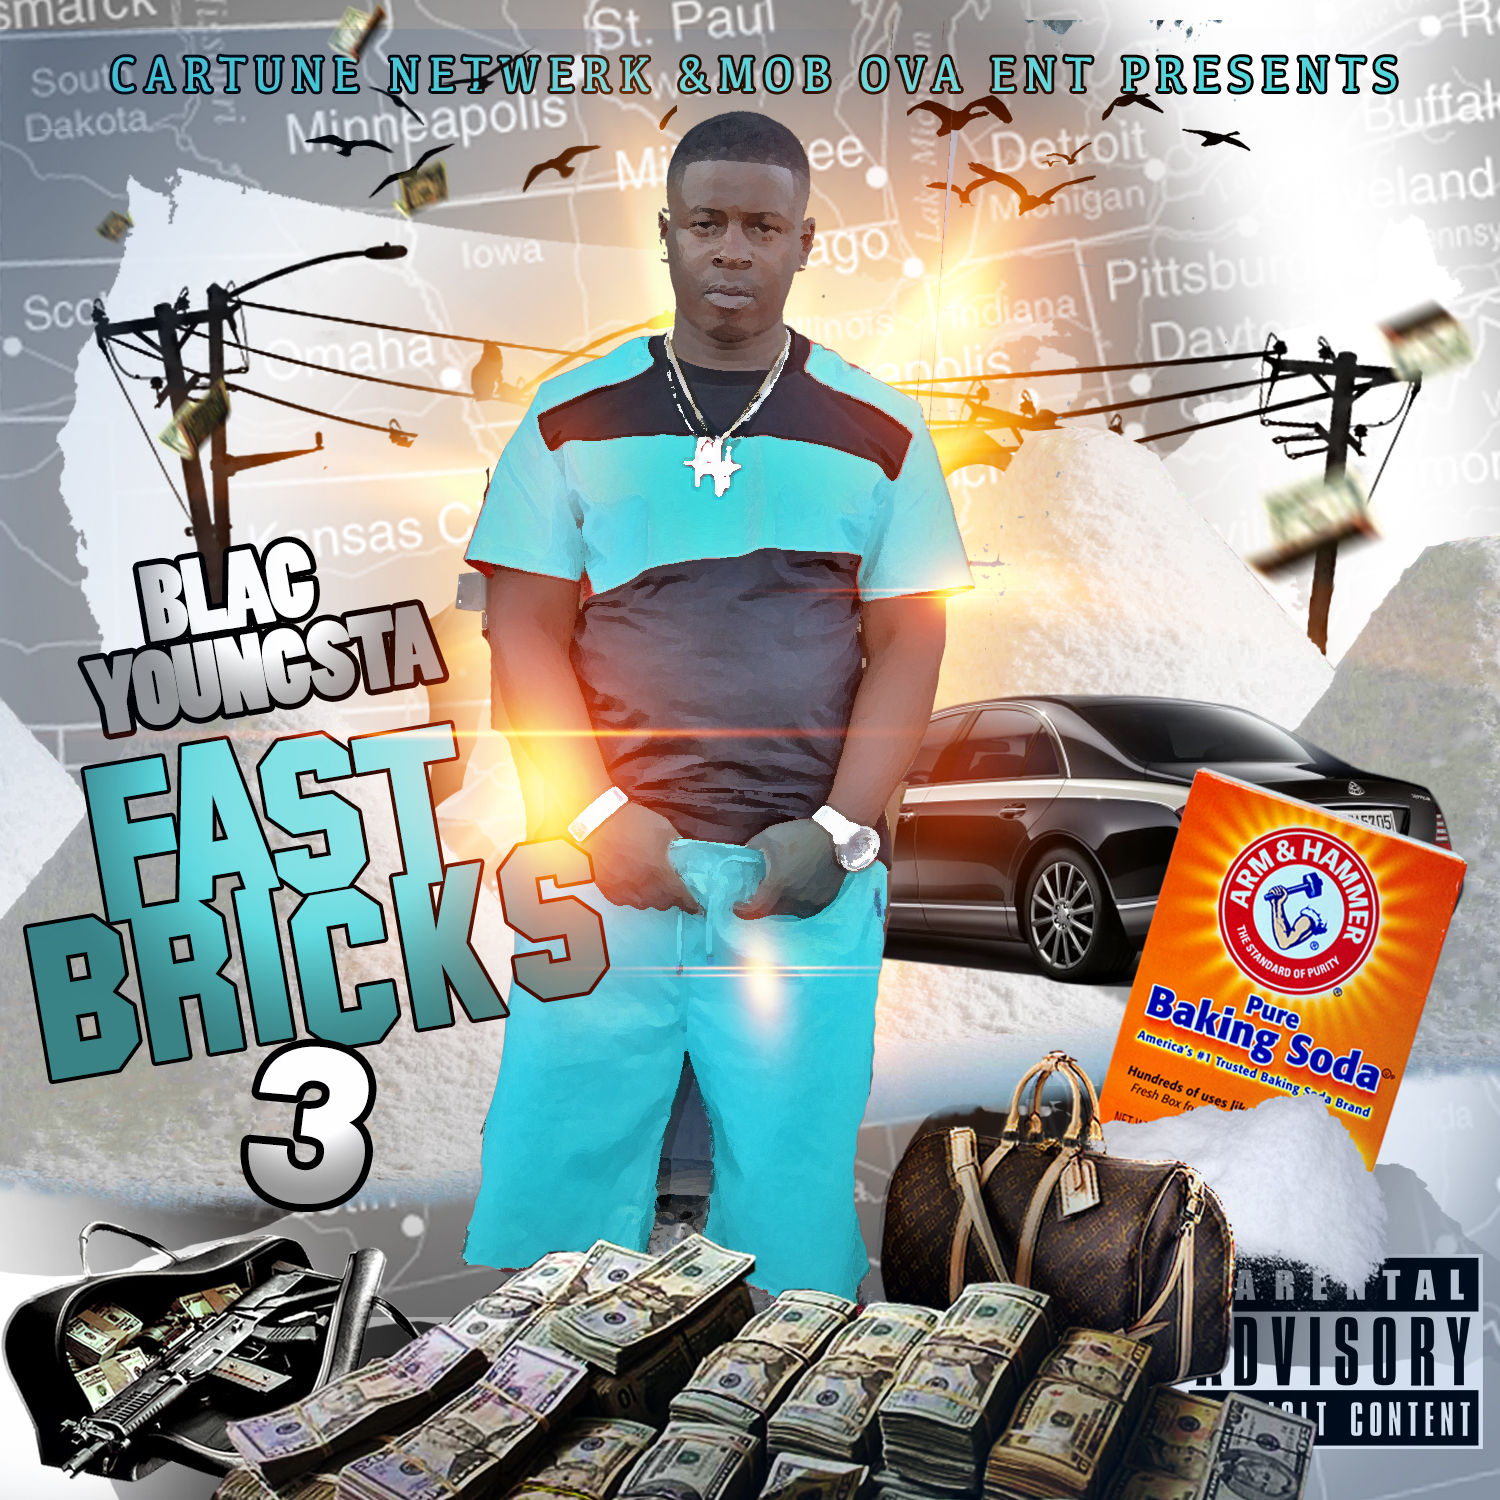 Blac Youngsta - Fast Bricks 3 Cover Art